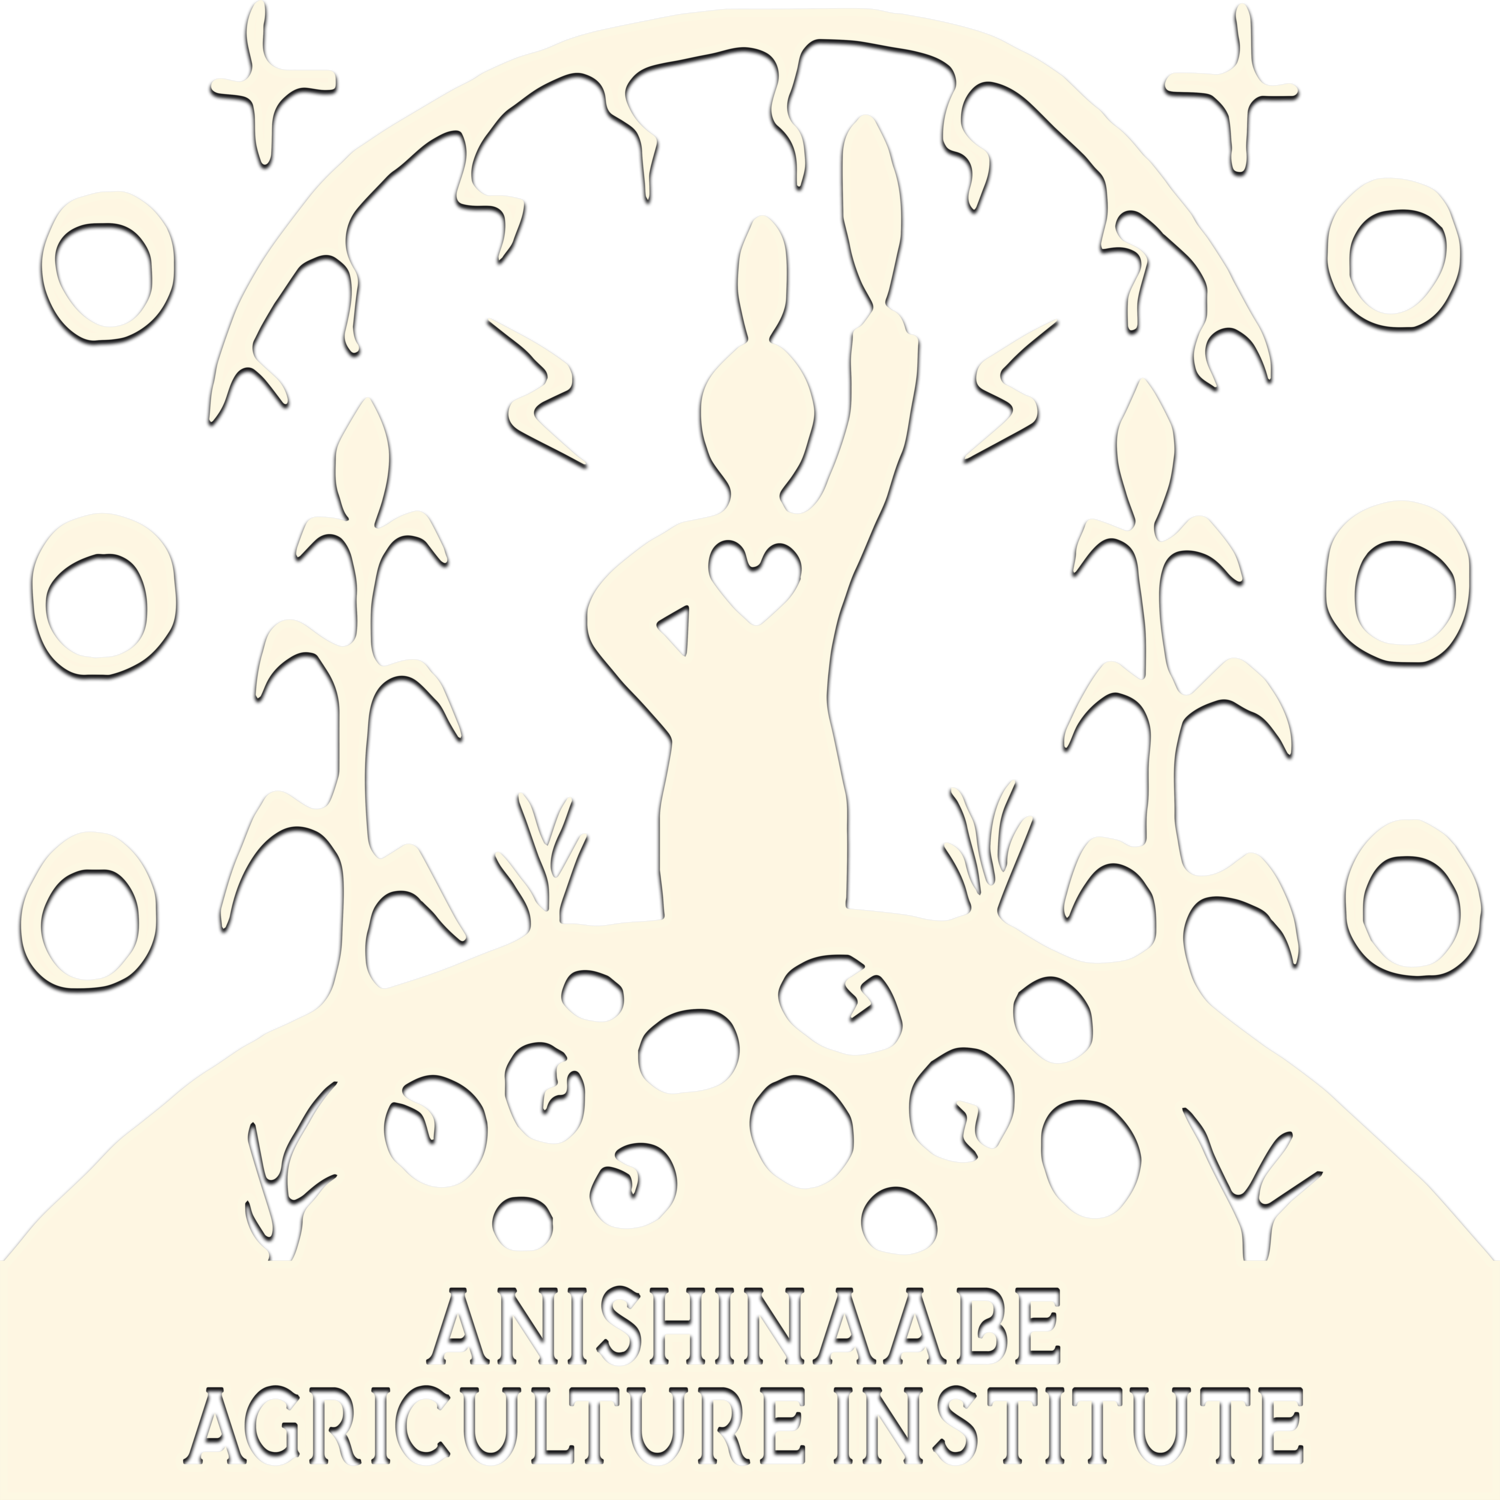 Anishinaabe Agriculture Institute